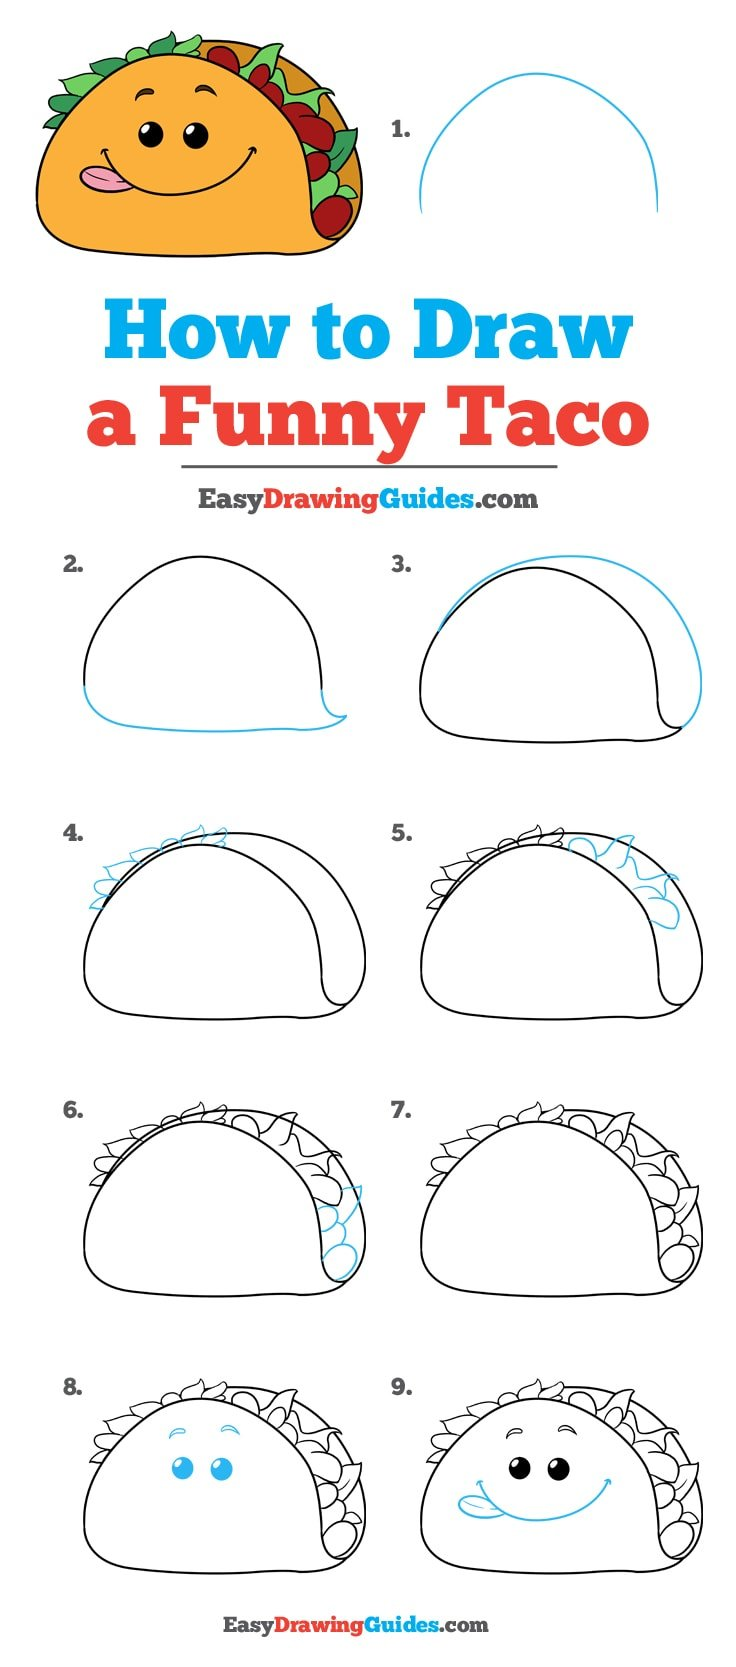 How to Draw Funny Taco